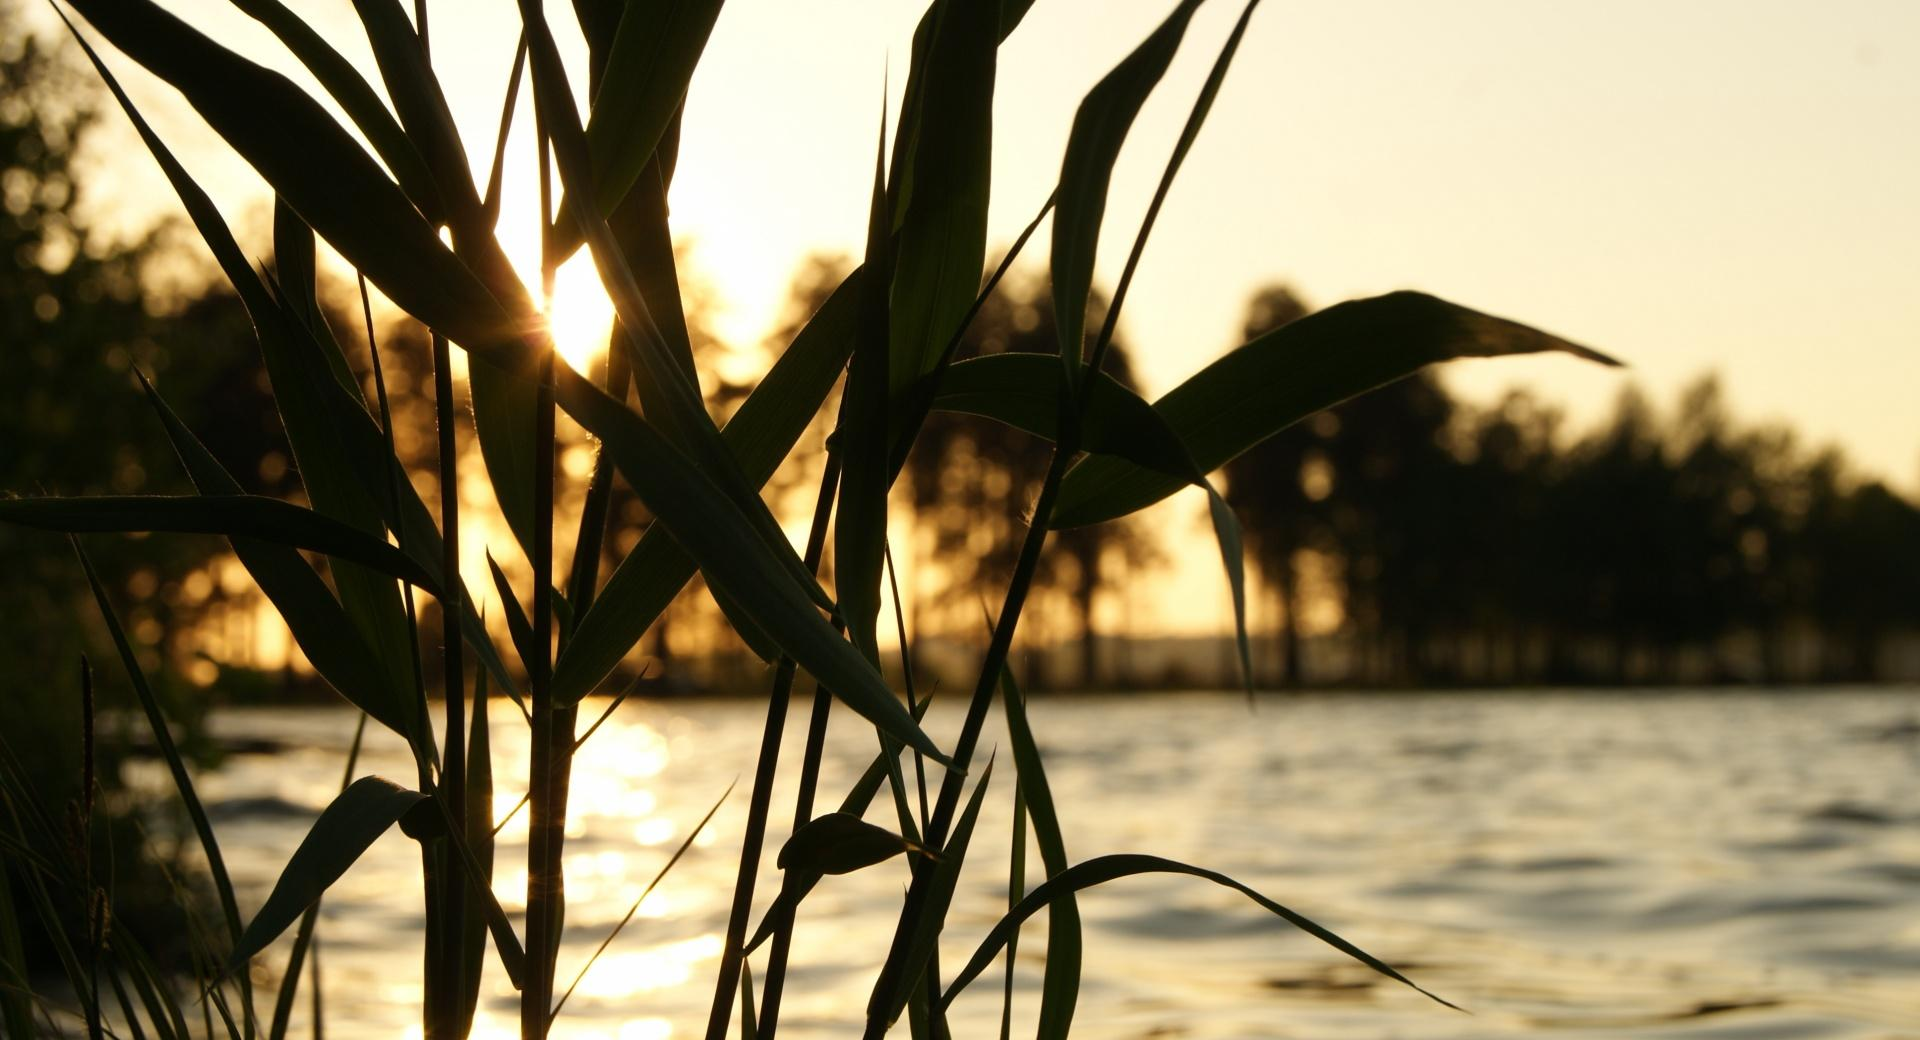 Reed, Sunset wallpapers HD quality